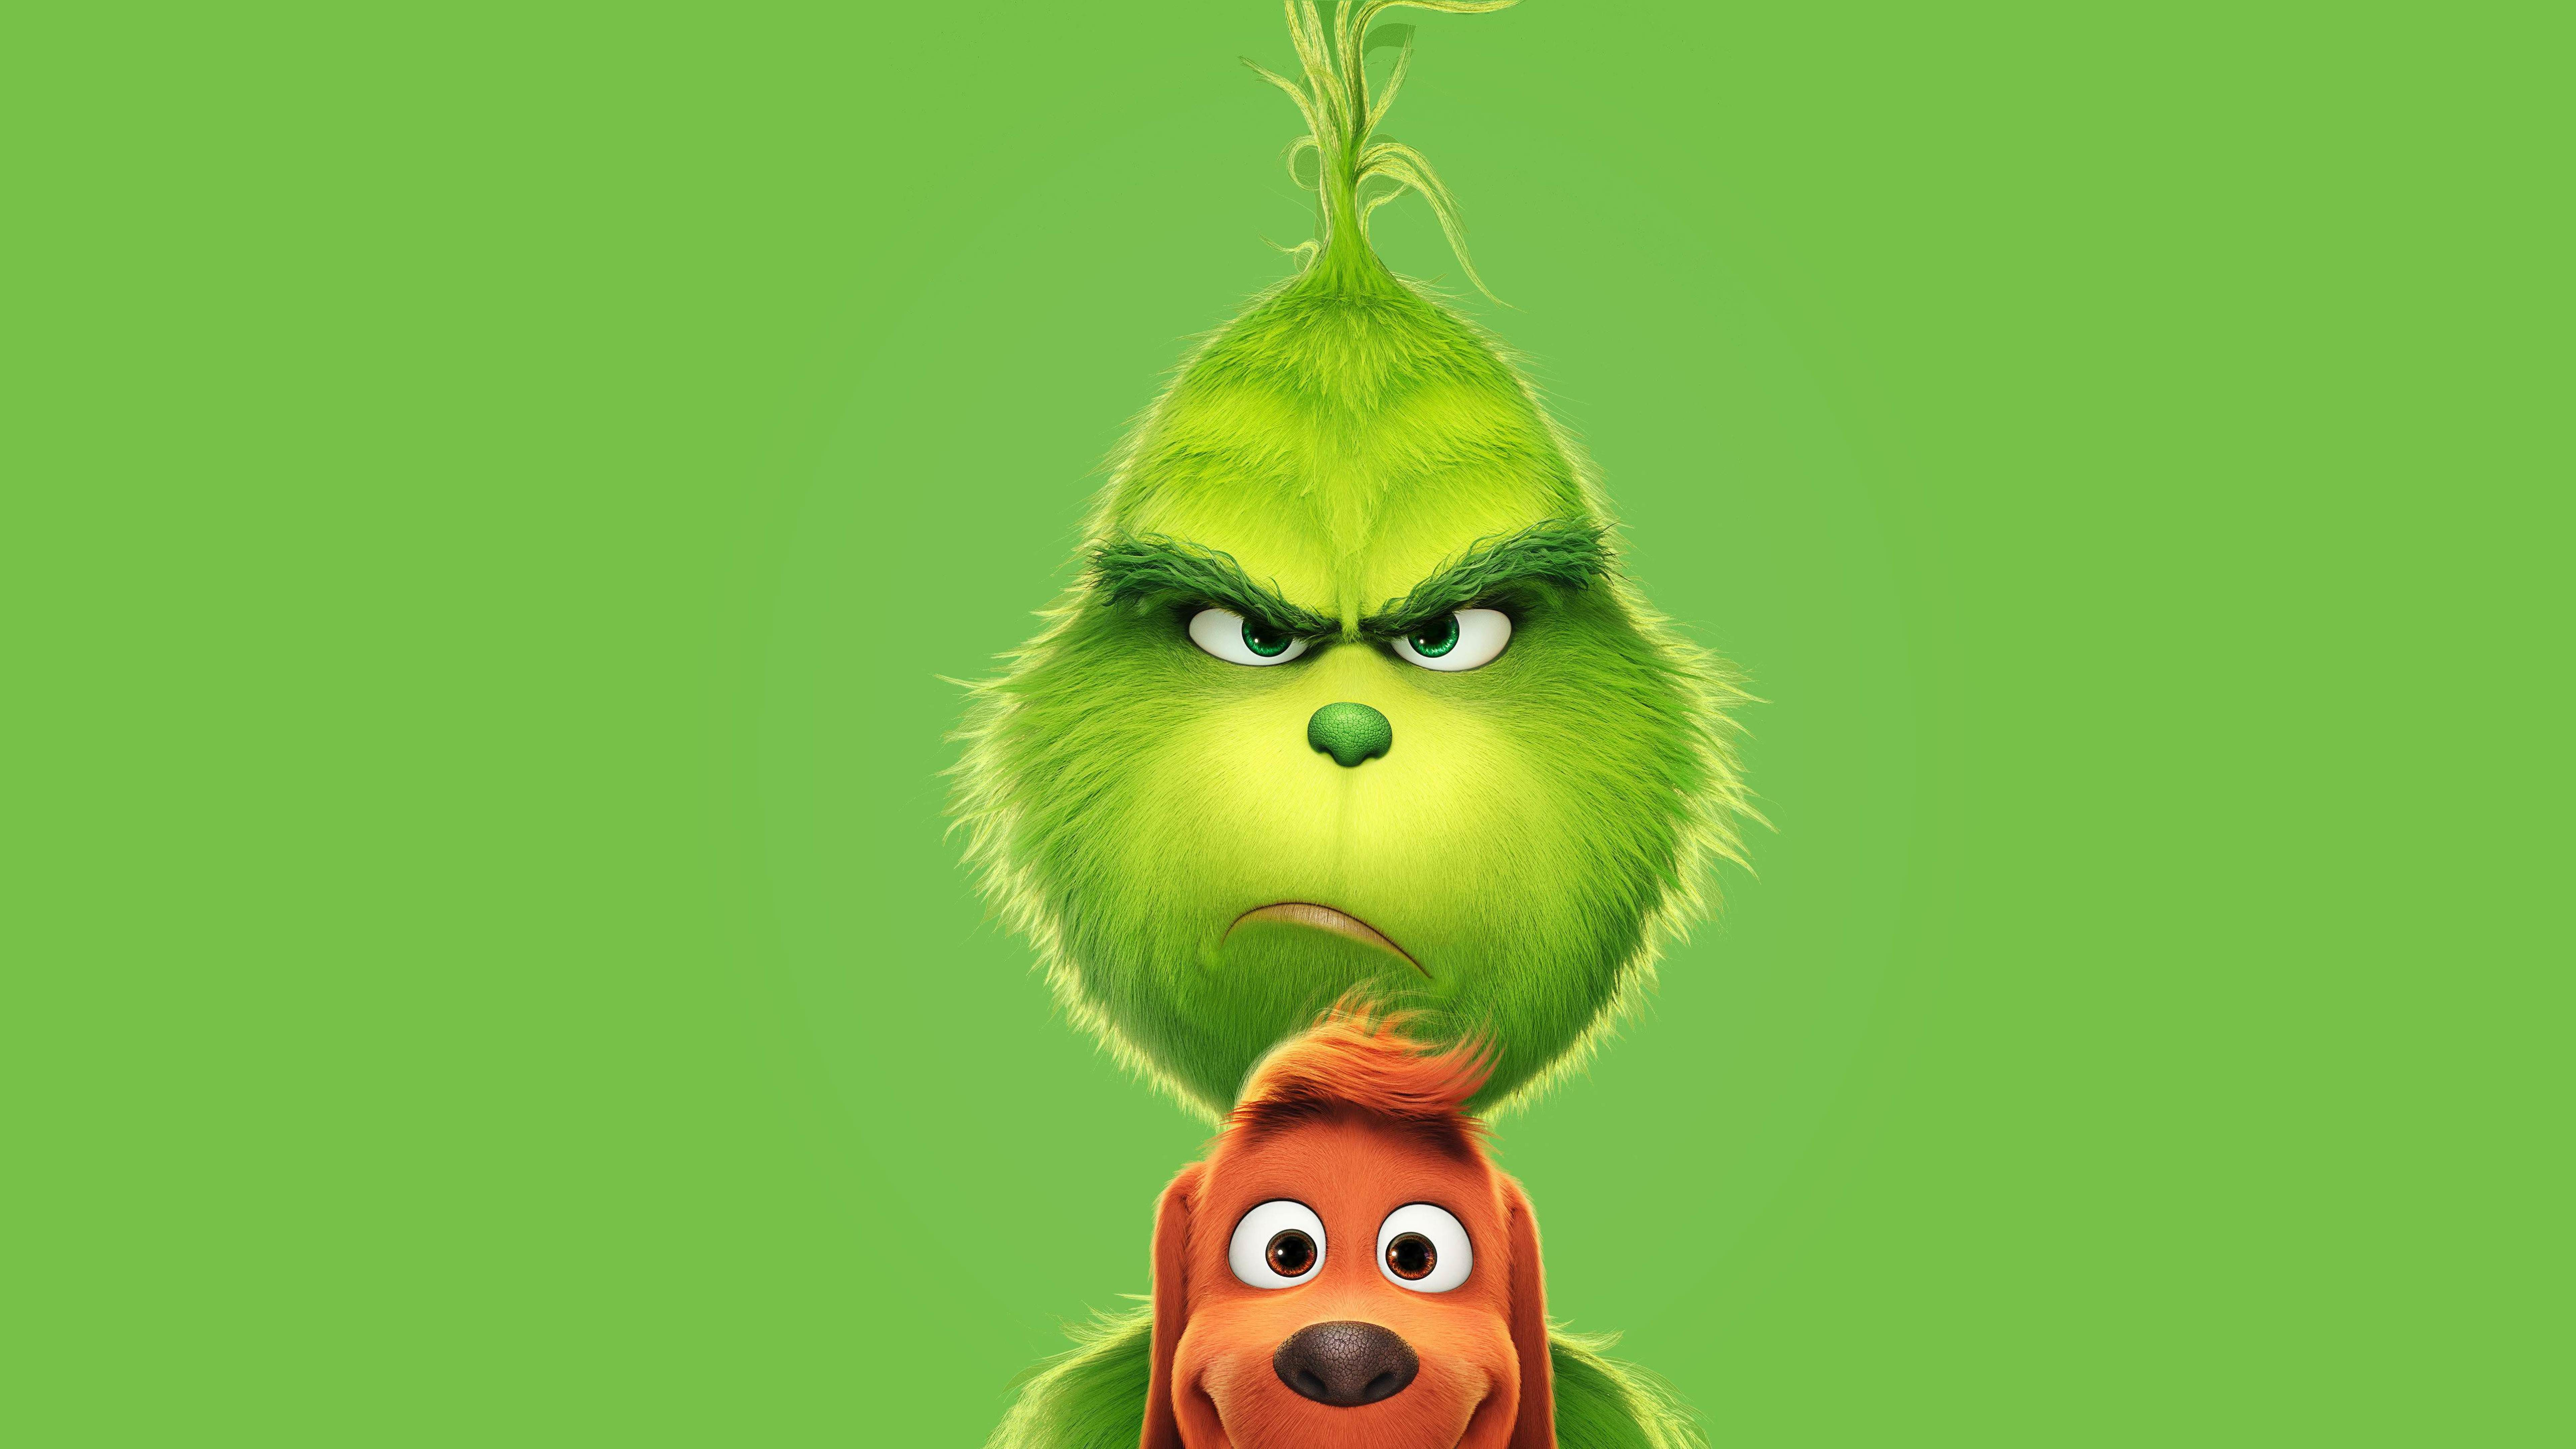 The Grinch 2018 Poster Hd 4k Wallpaper